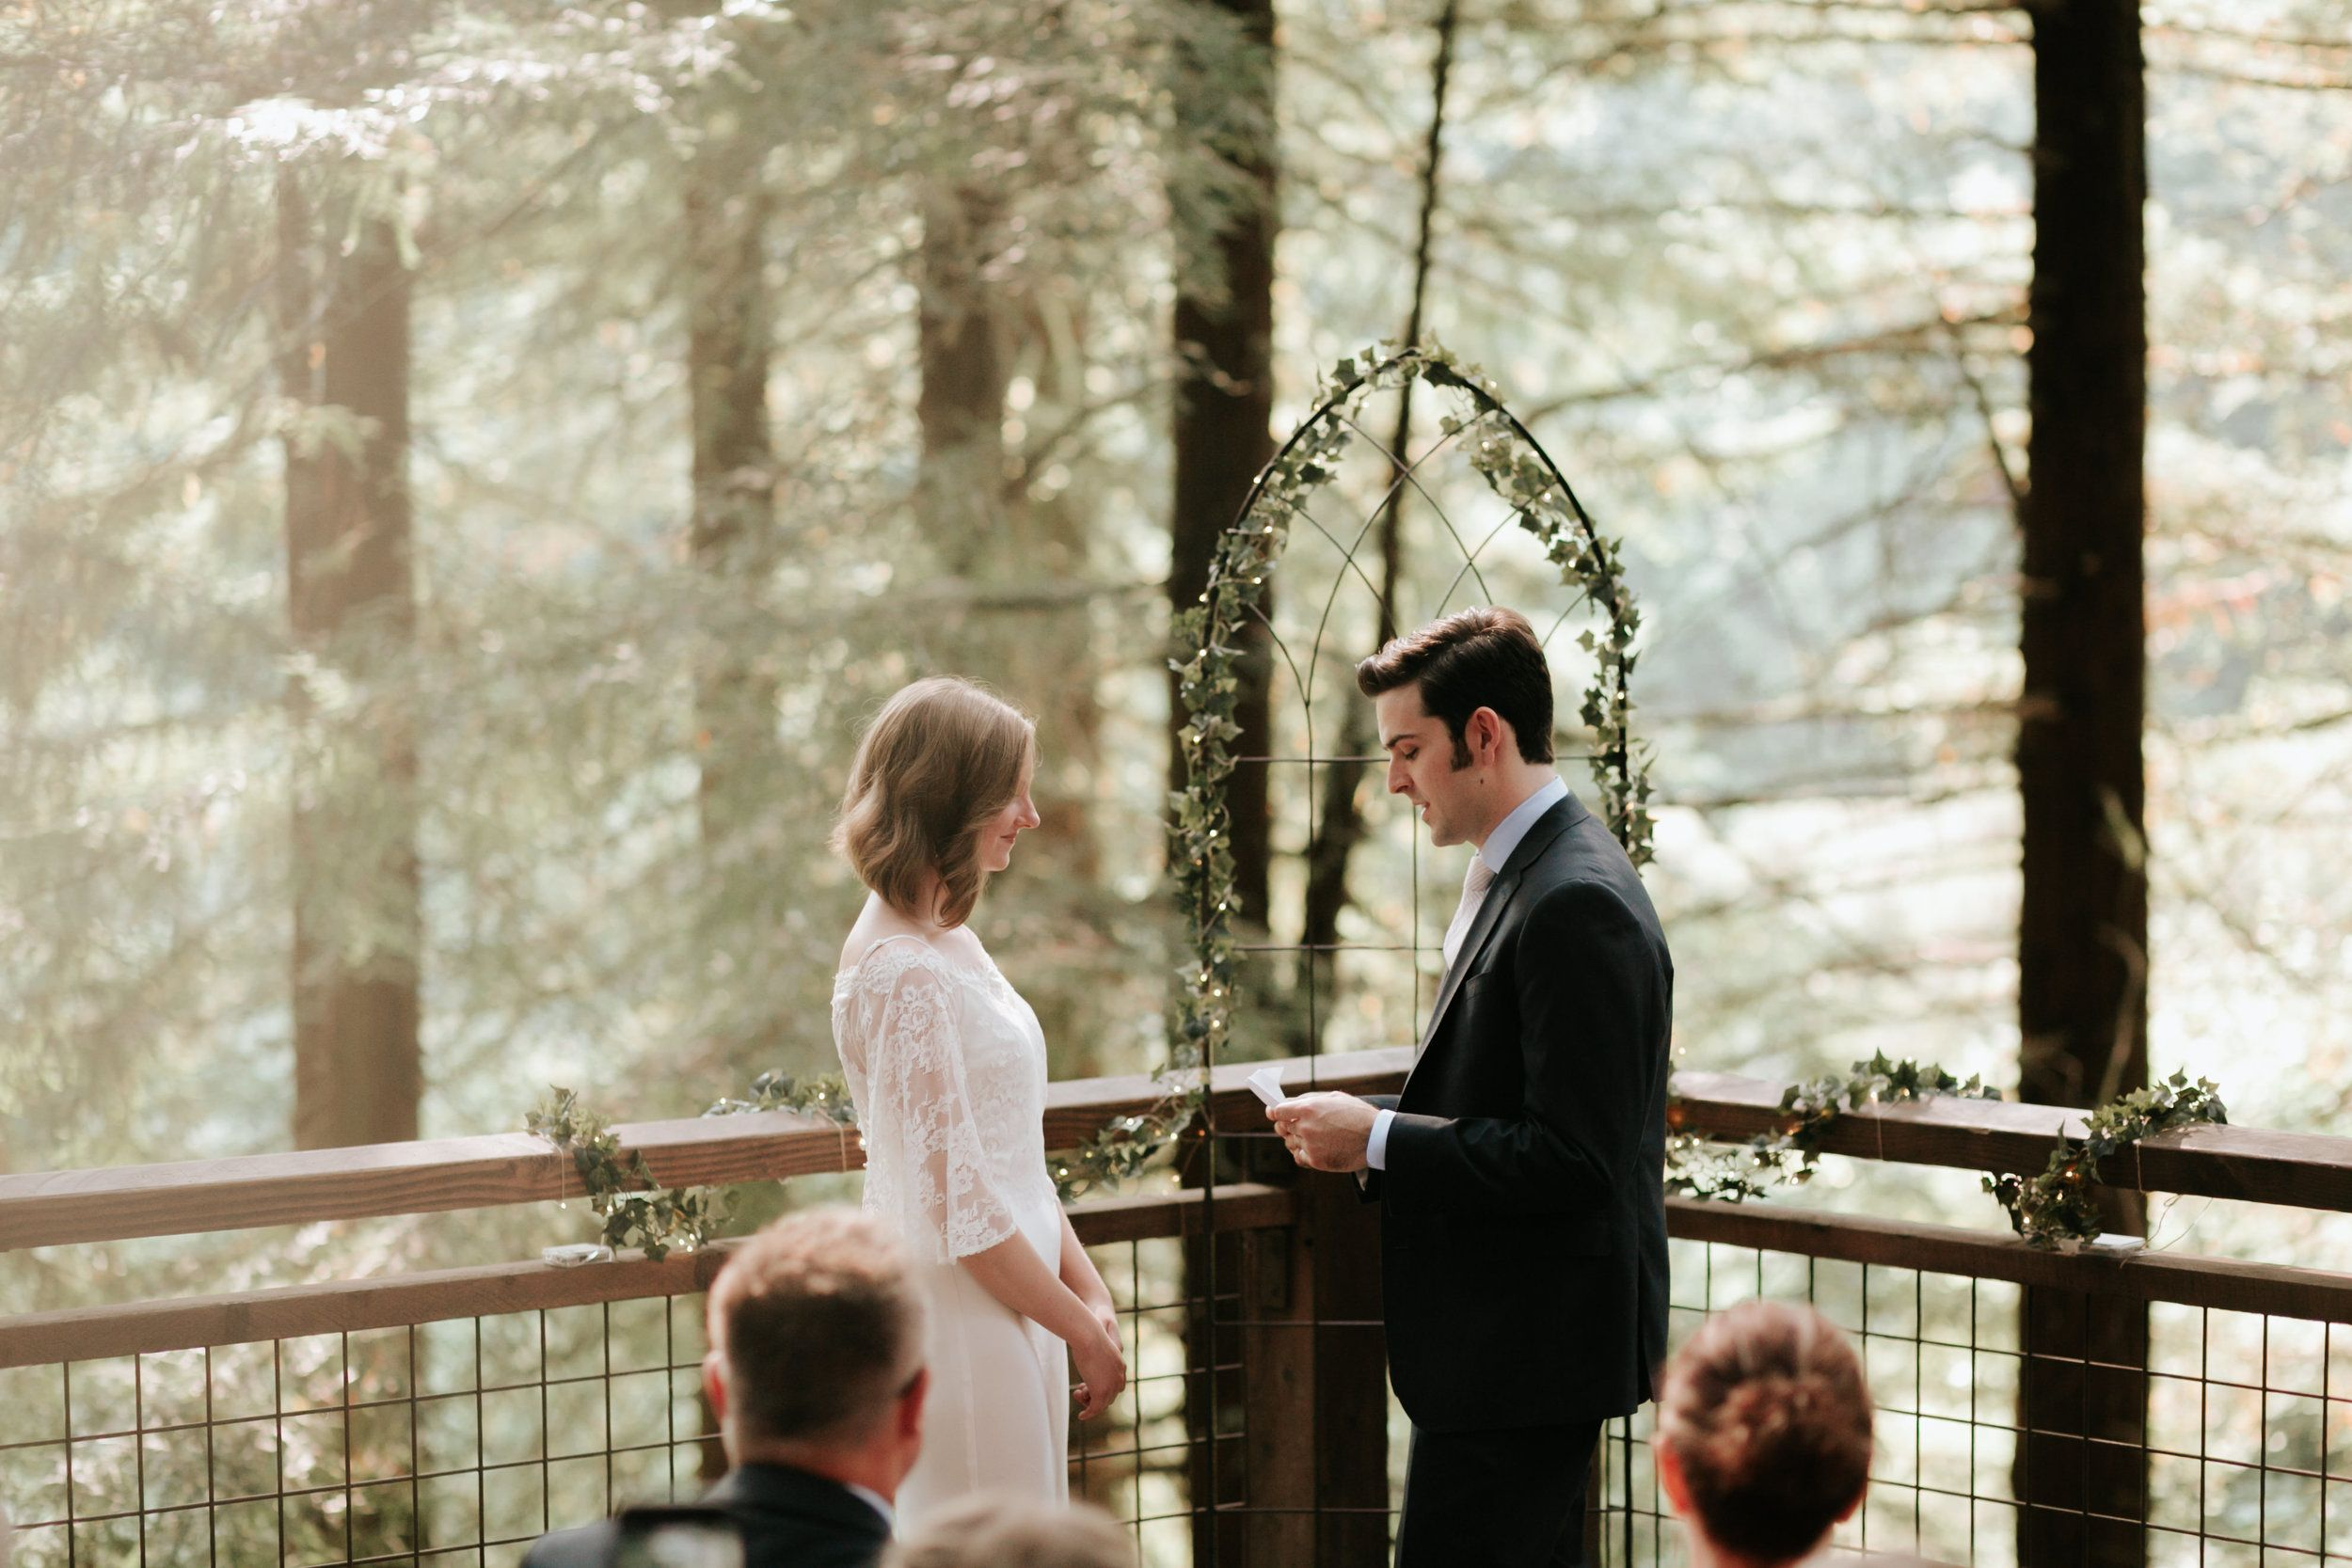 Simple Intimate Wedding Ceremony At The Hoyt Arboretum Redwood Deck In Portland Oregon By The Soft Sea Redwood Decking Portland Oregon Wedding Intimate Wedding